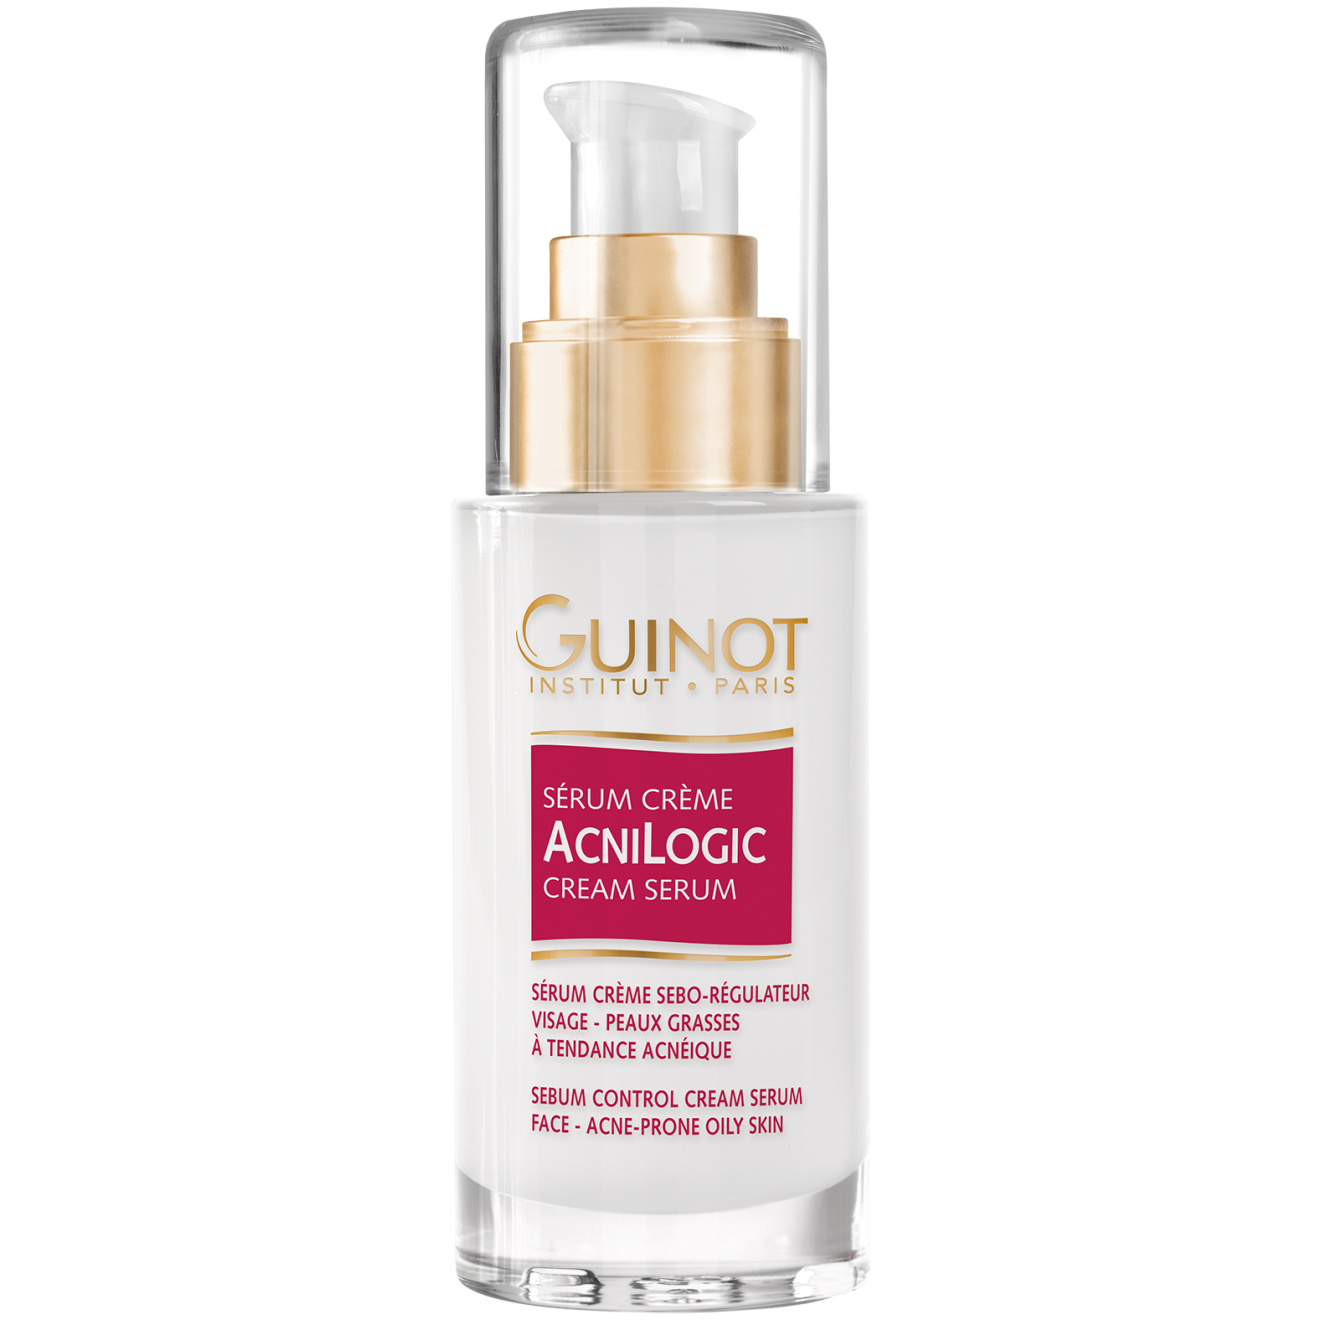 Guinot - AcniLogic Serum Cream